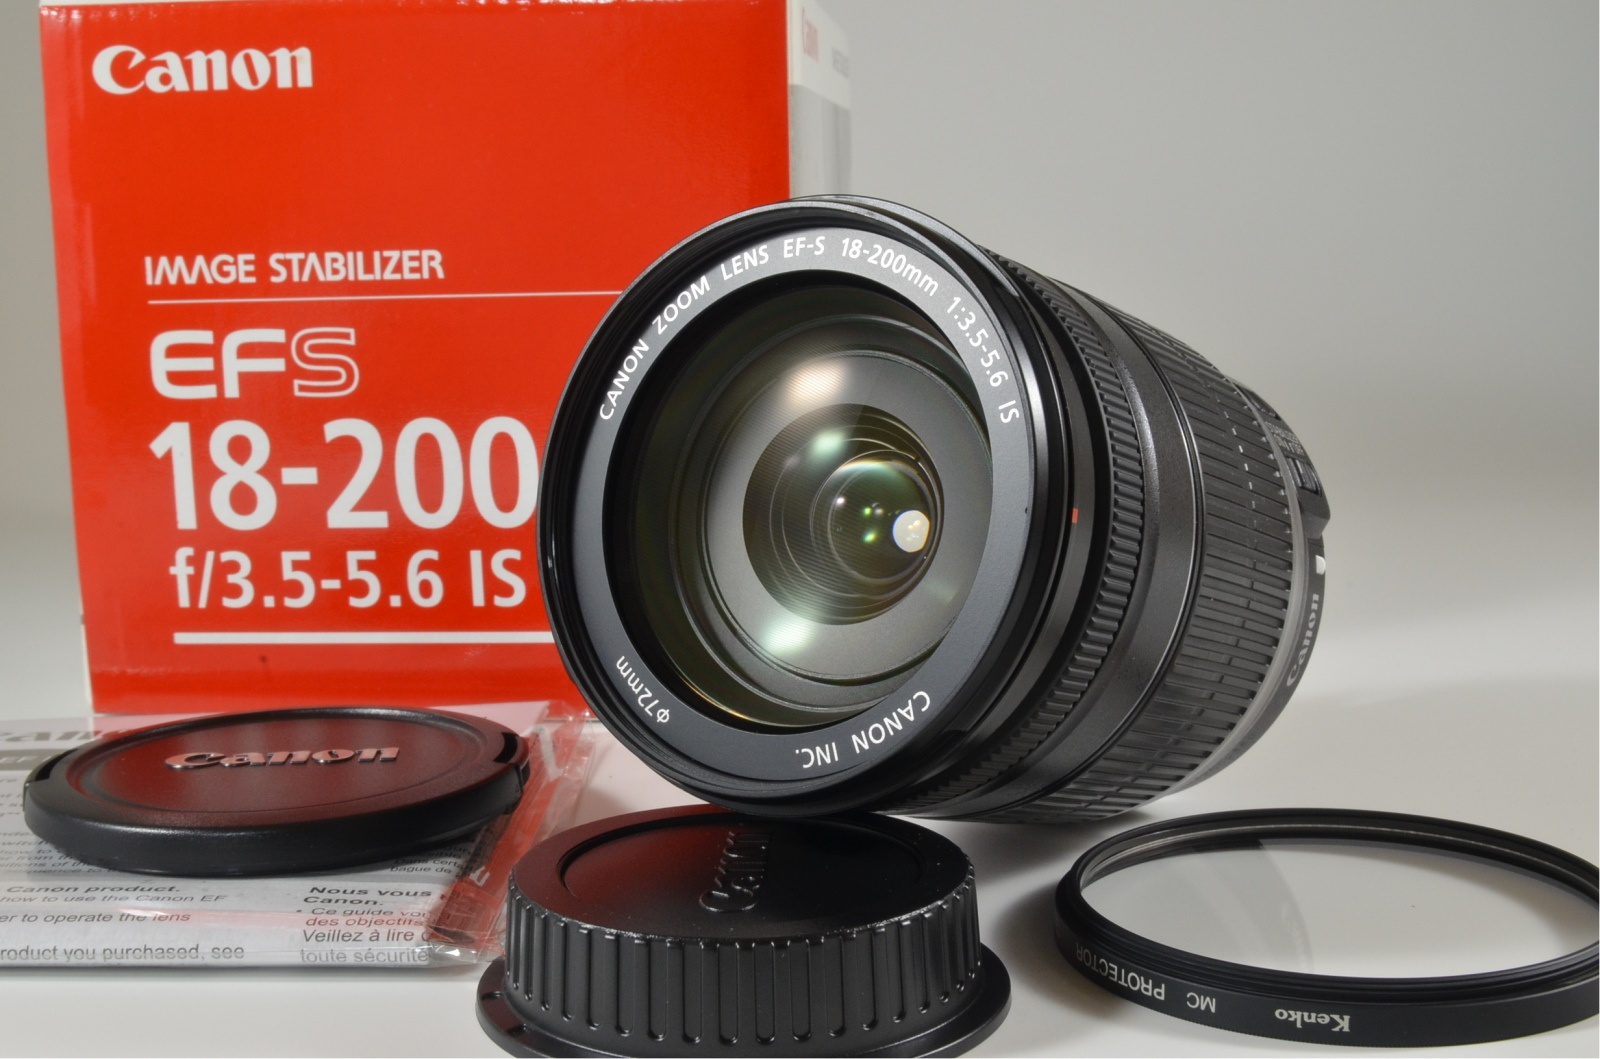 canon zoom lens ef-s 18-200 mm f/3.5-5.6 is lens